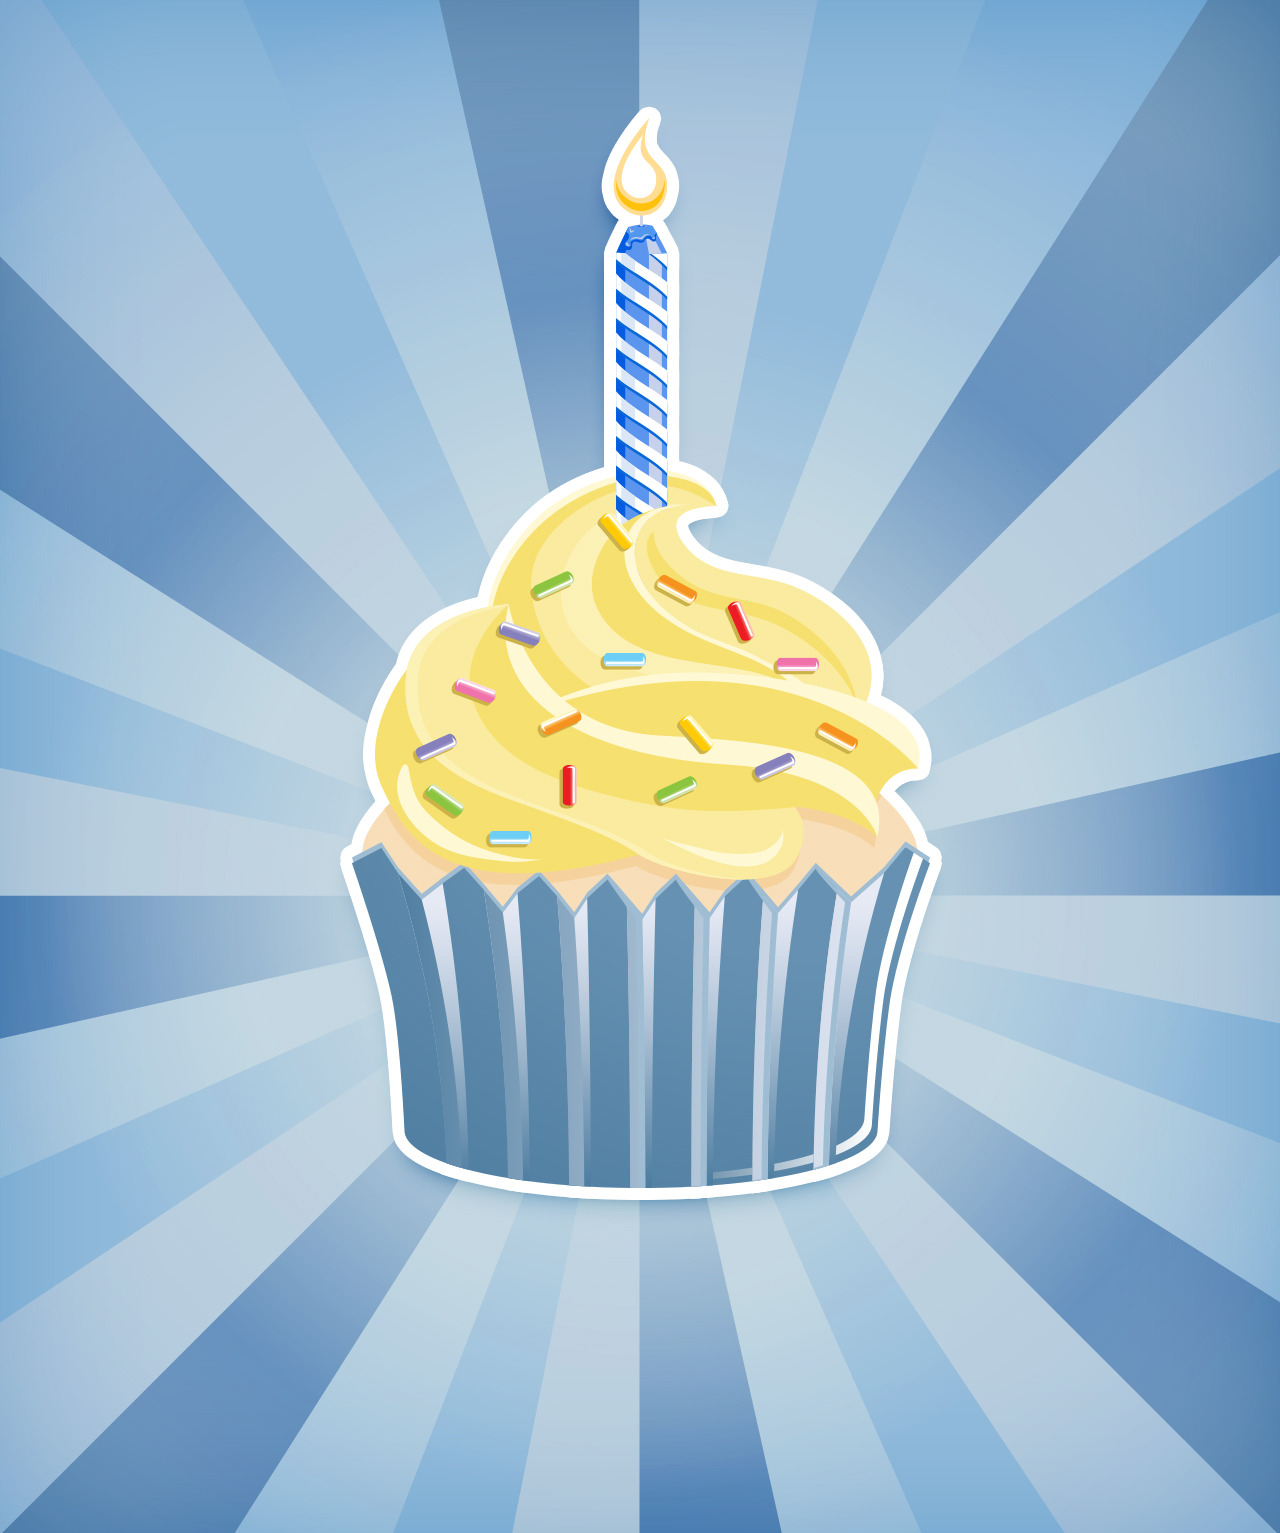 CLU Wellness Programs turned 1 today!